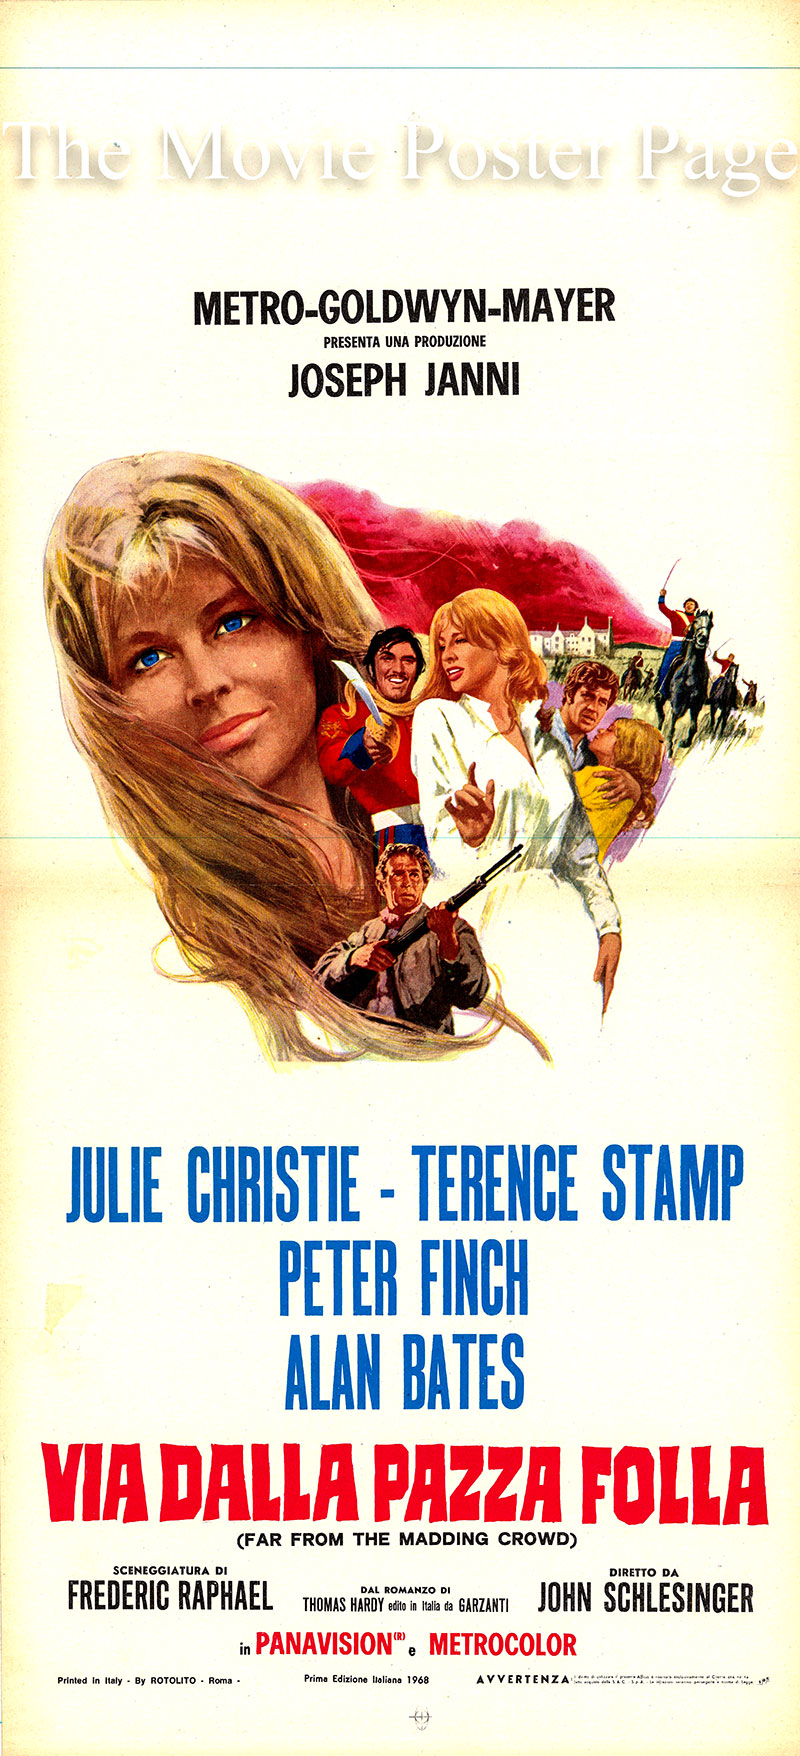 Pictured is an Italian locandina poster for the 1967 John Schlesinger film <i>Far from the Madding Crowd</i> based on the 1874 Thomas Hardy novel of the same title, screenplay by Fredrick Raphael and starring Julie Christie as Bathsheba Everdene.